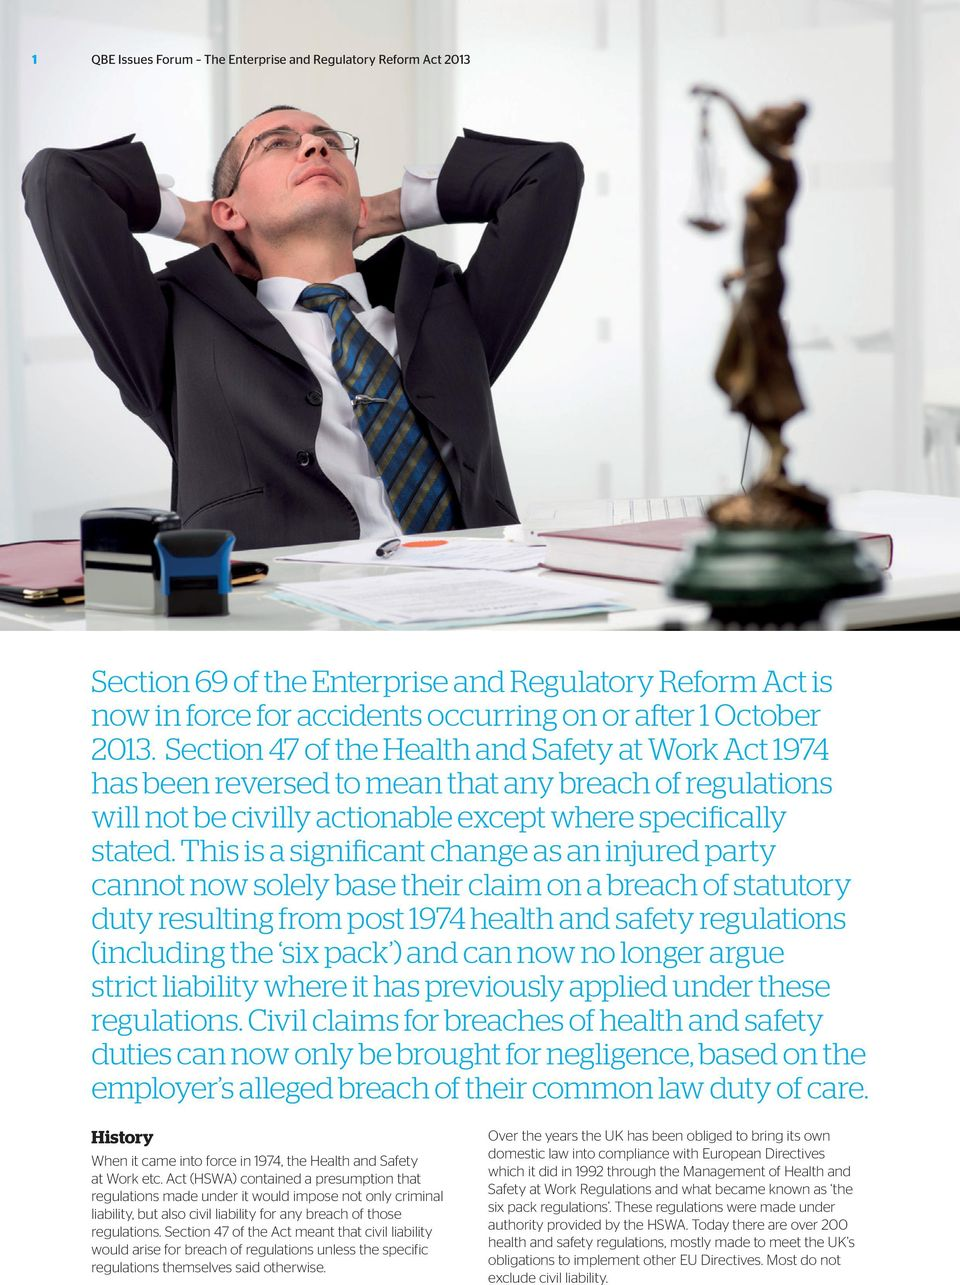 This is a significant change as an injured party cannot now solely base their claim on a breach of statutory duty resulting from post 1974 health and safety regulations (including the six pack ) and